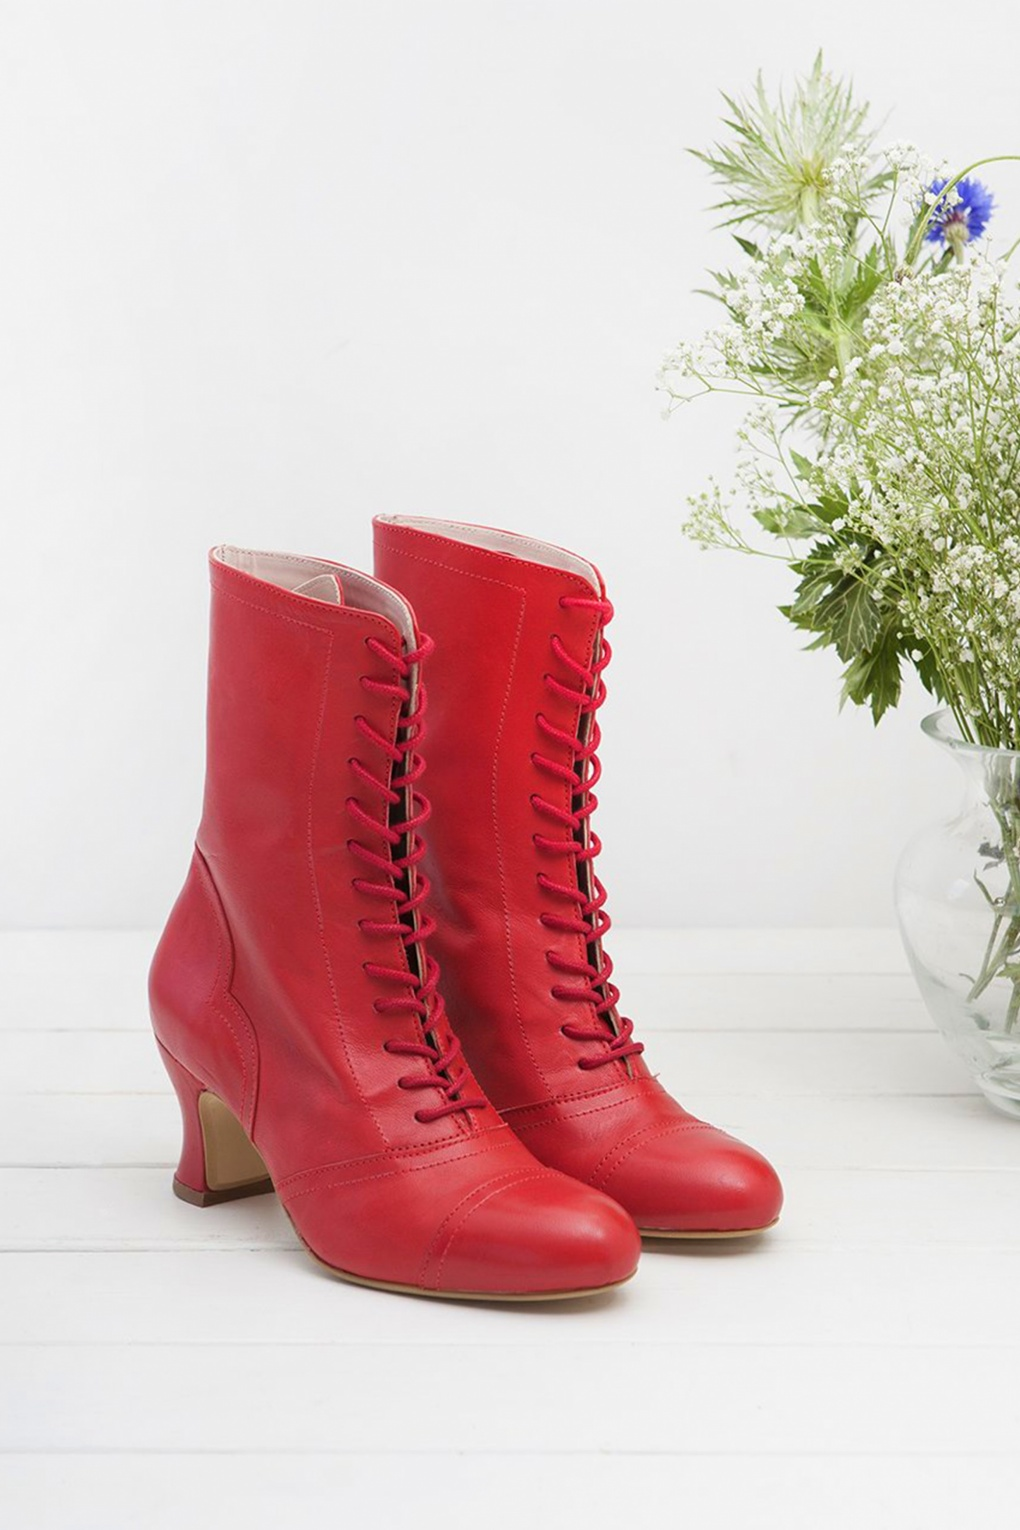 Vintage Style Shoes, Vintage Inspired Shoes 40s Frida Lace Up Booties in Red £179.98 AT vintagedancer.com